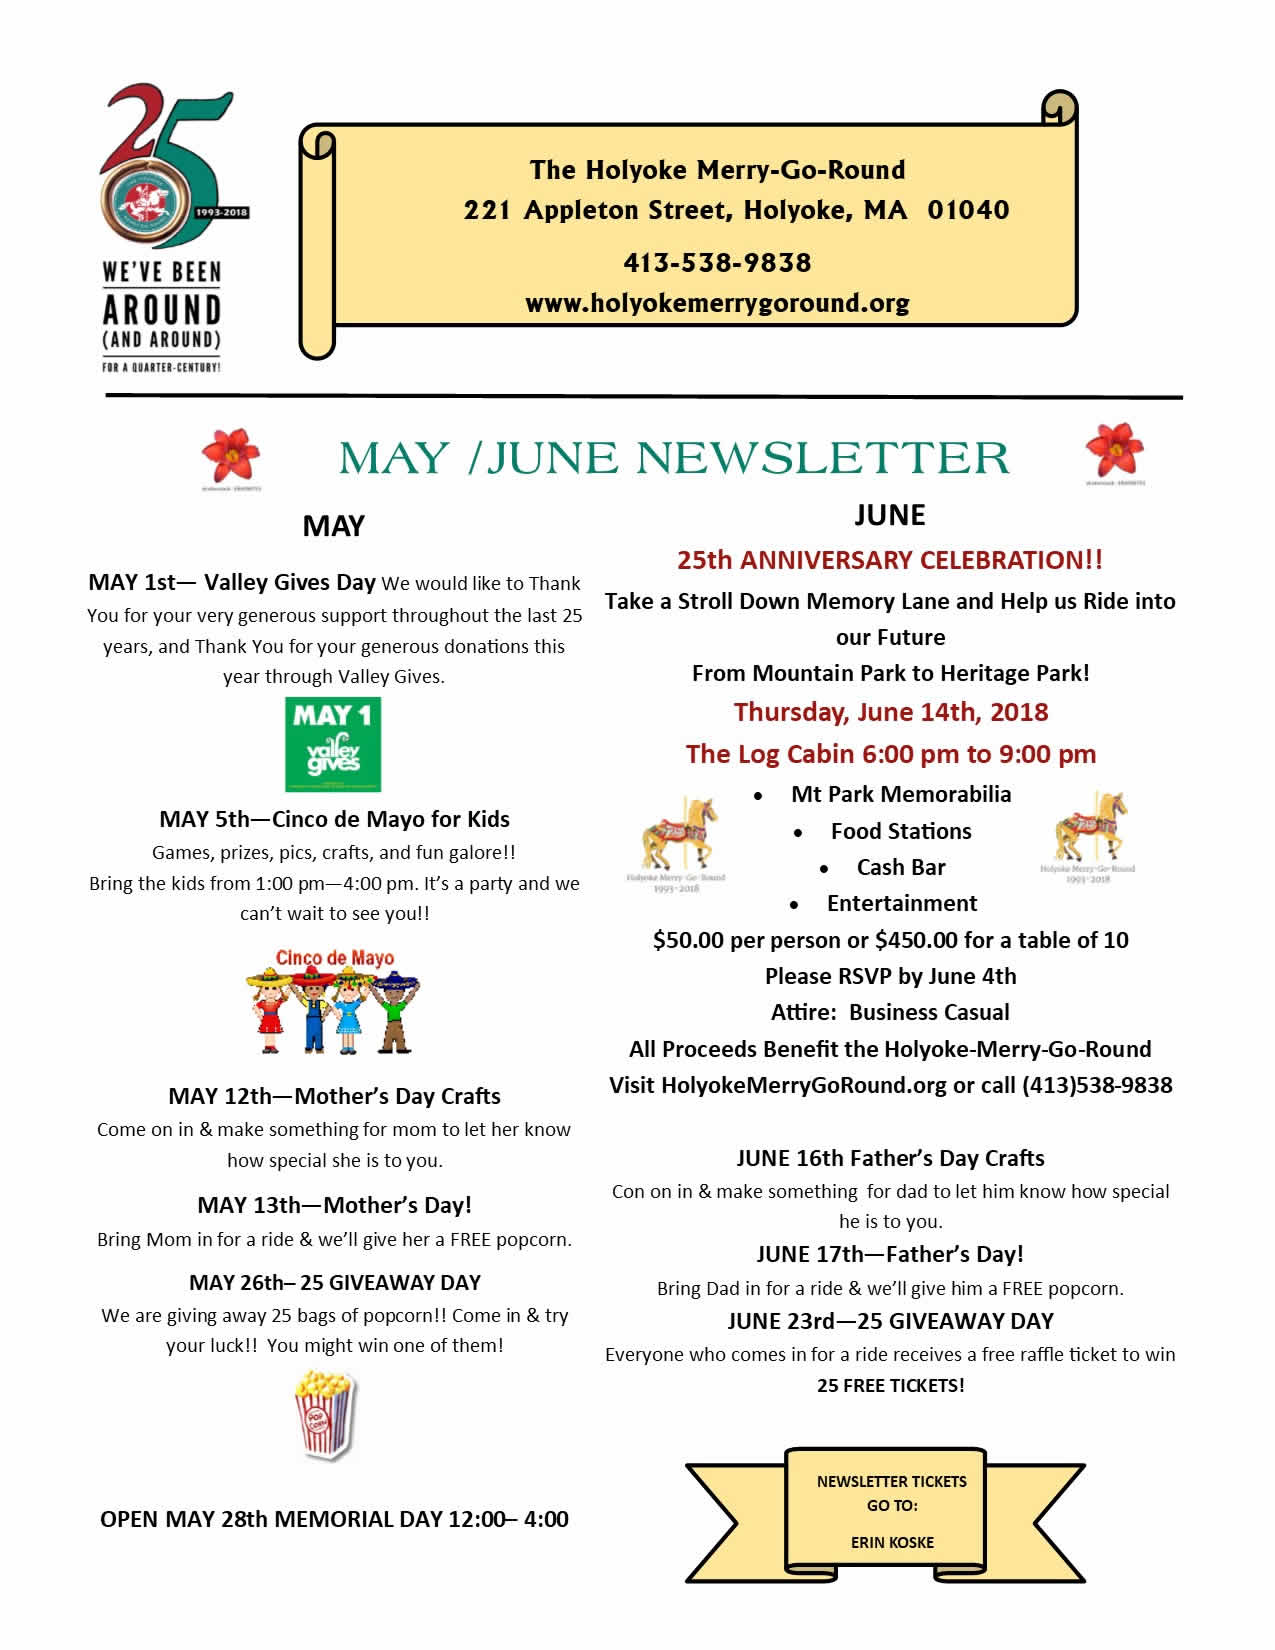 Holyoke Merry-Go-Round May & June Newsletter